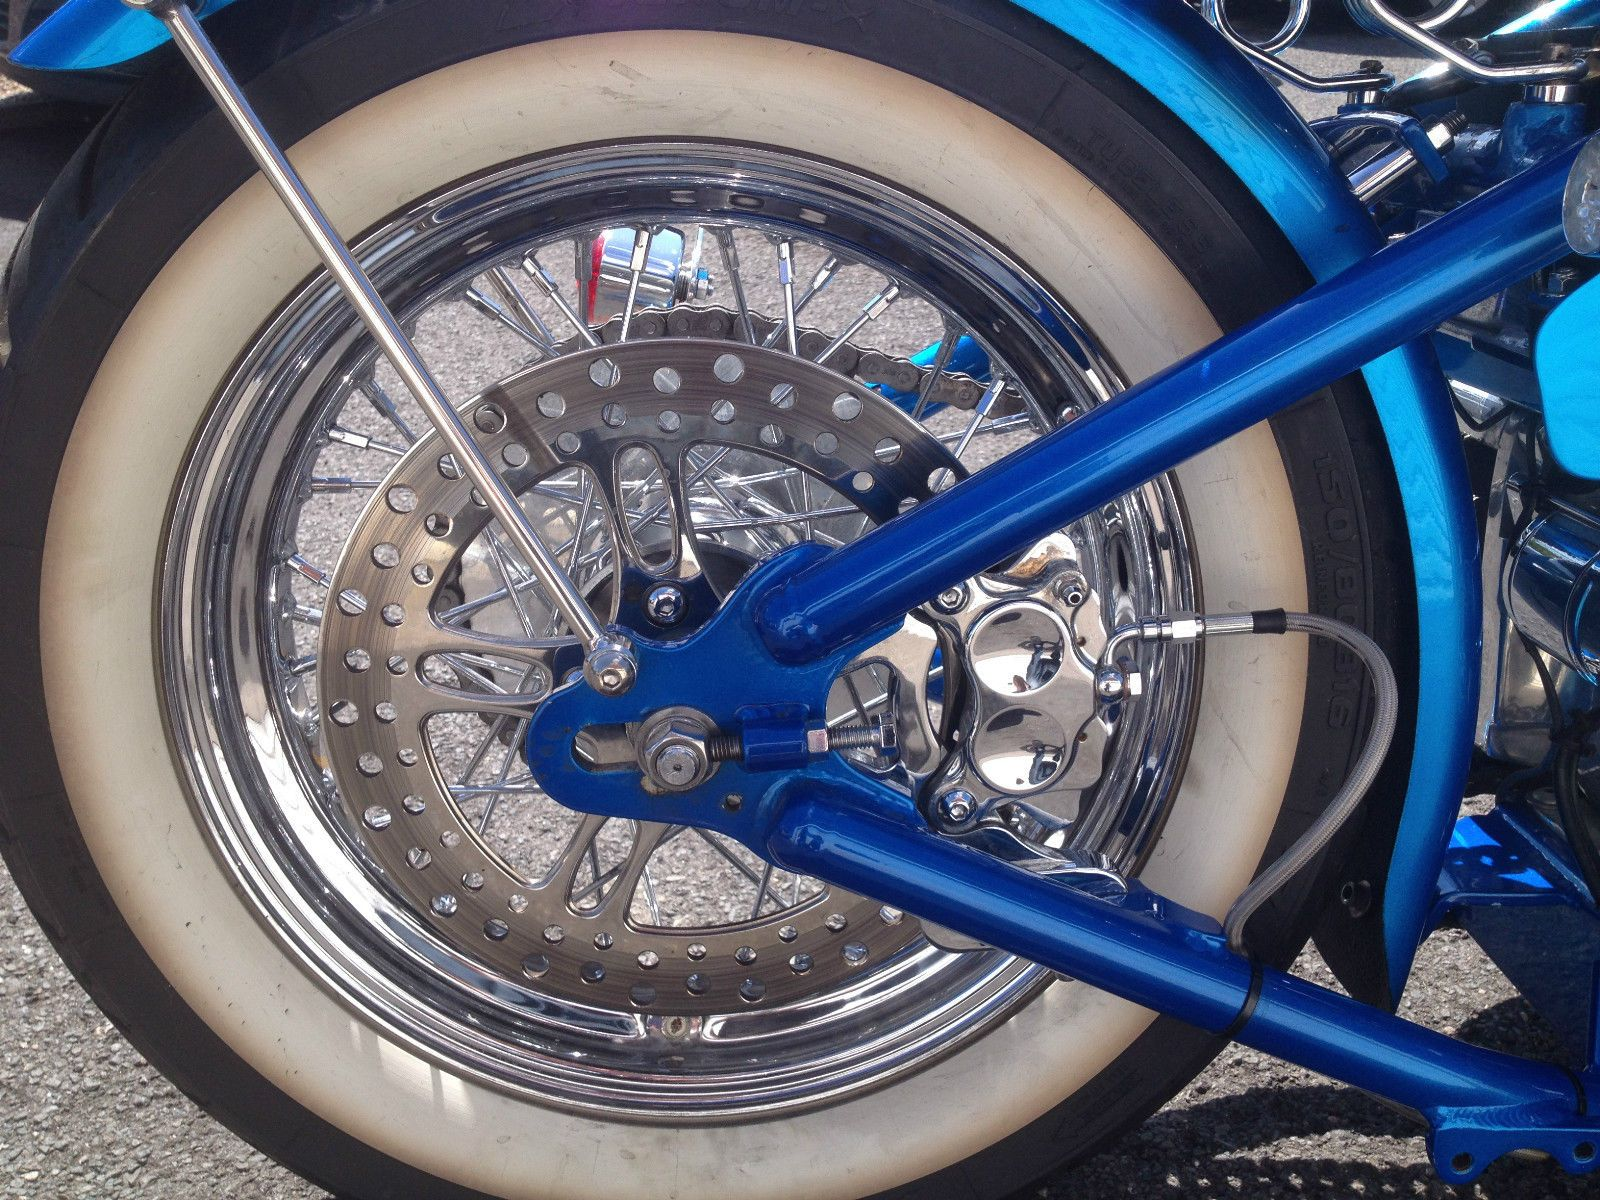 2011 \'Lo Boy\' Southern Motorcycle Works 1600cc 6 Speed Hardtail ...